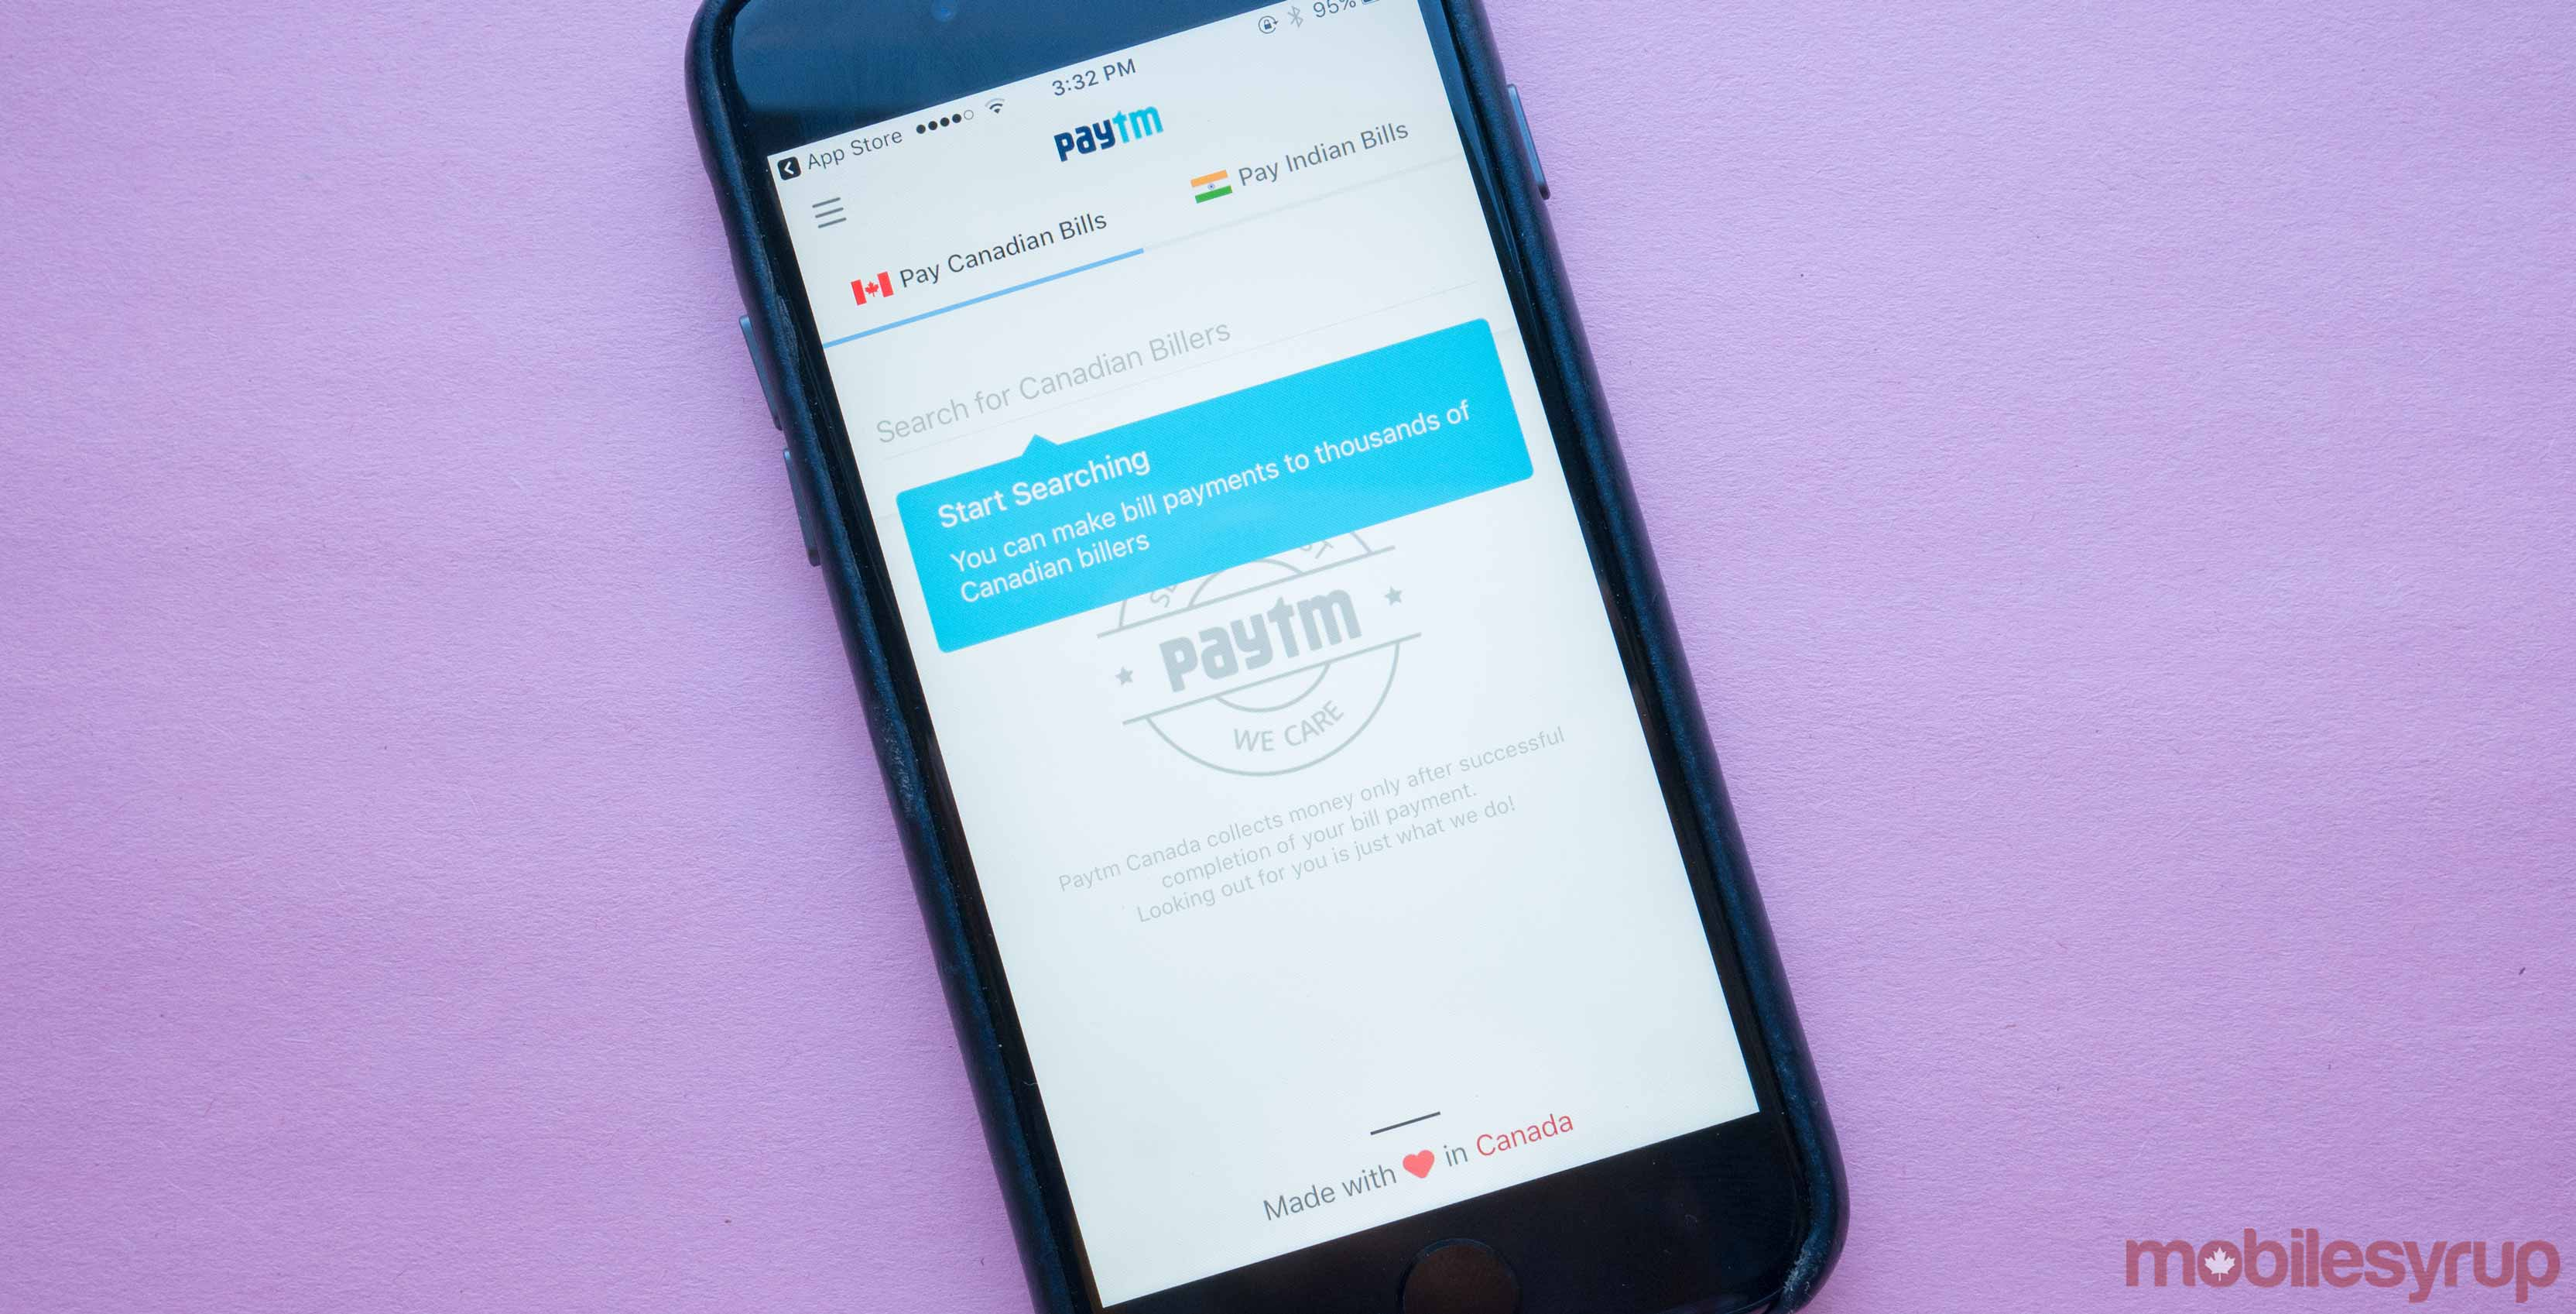 Mobile payments app Paytm offers $10 credit to customers at